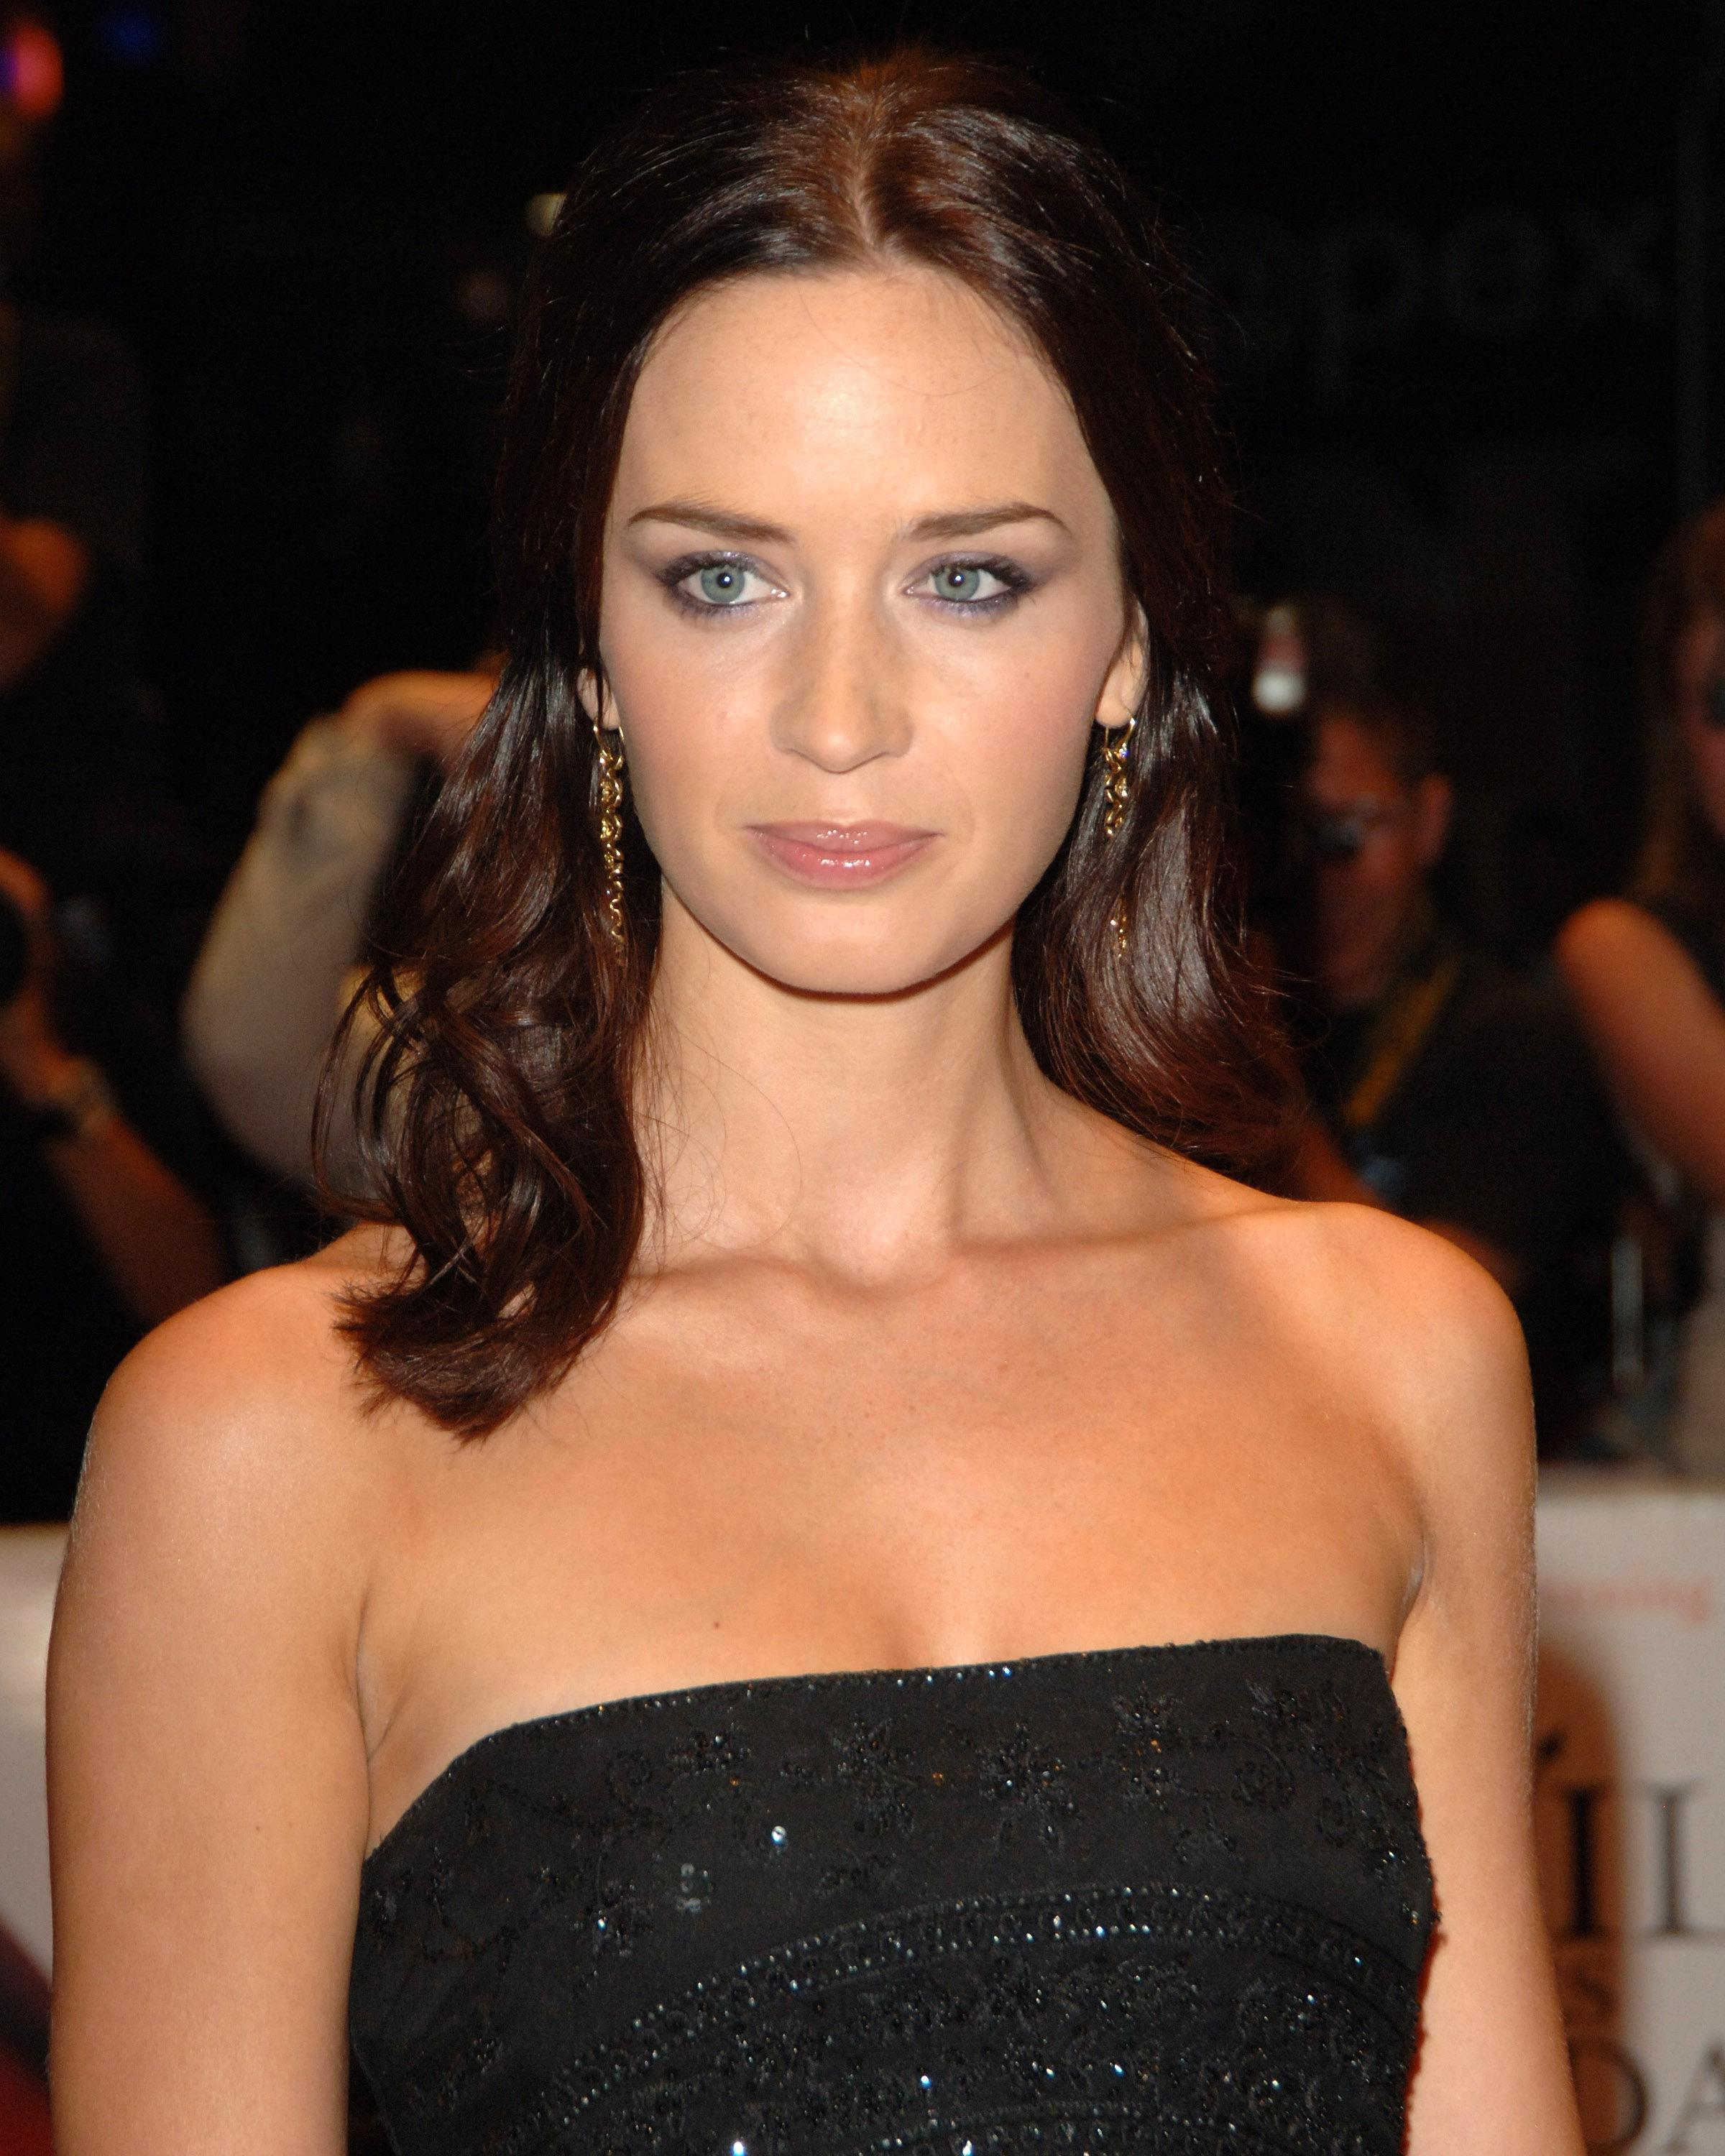 Celebrity Emily Blunt Good images | Lifestyles 717 Emily Blunt